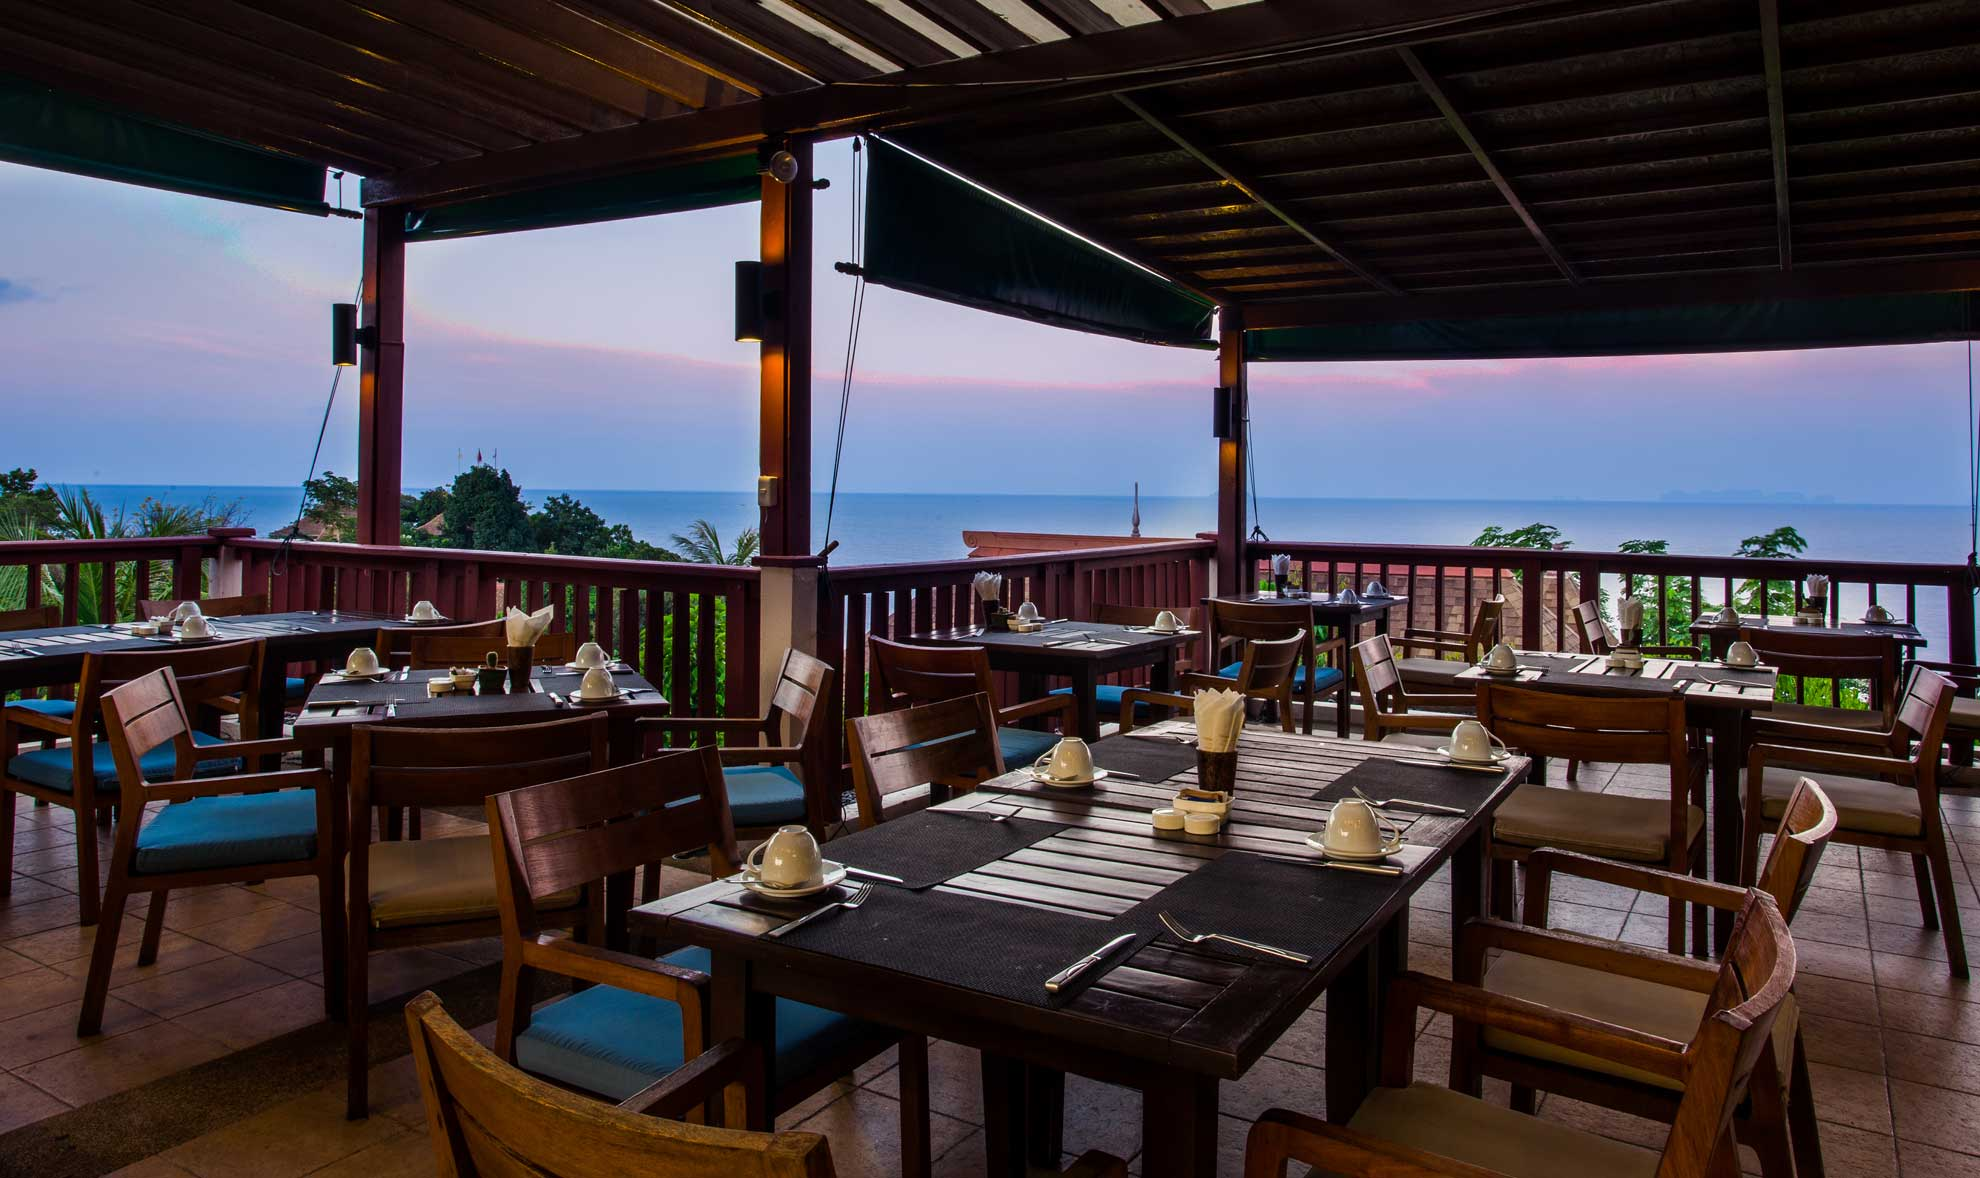 Koh Lanta restaurants - Crown Lanta